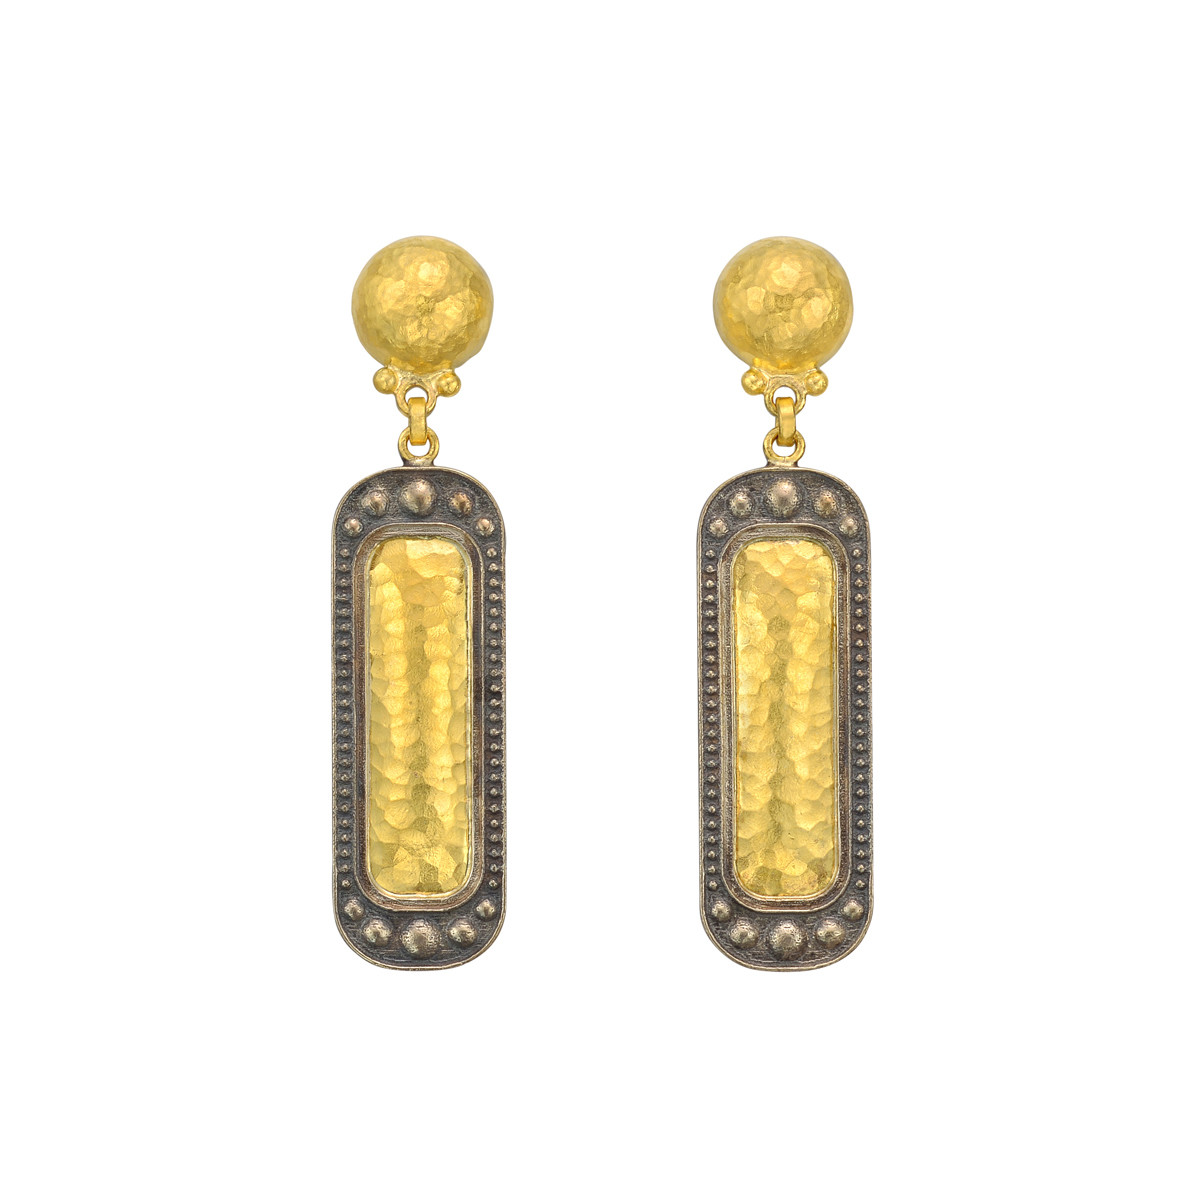 24k Yellow & 18k White Gold Rectangular Drop Earrings